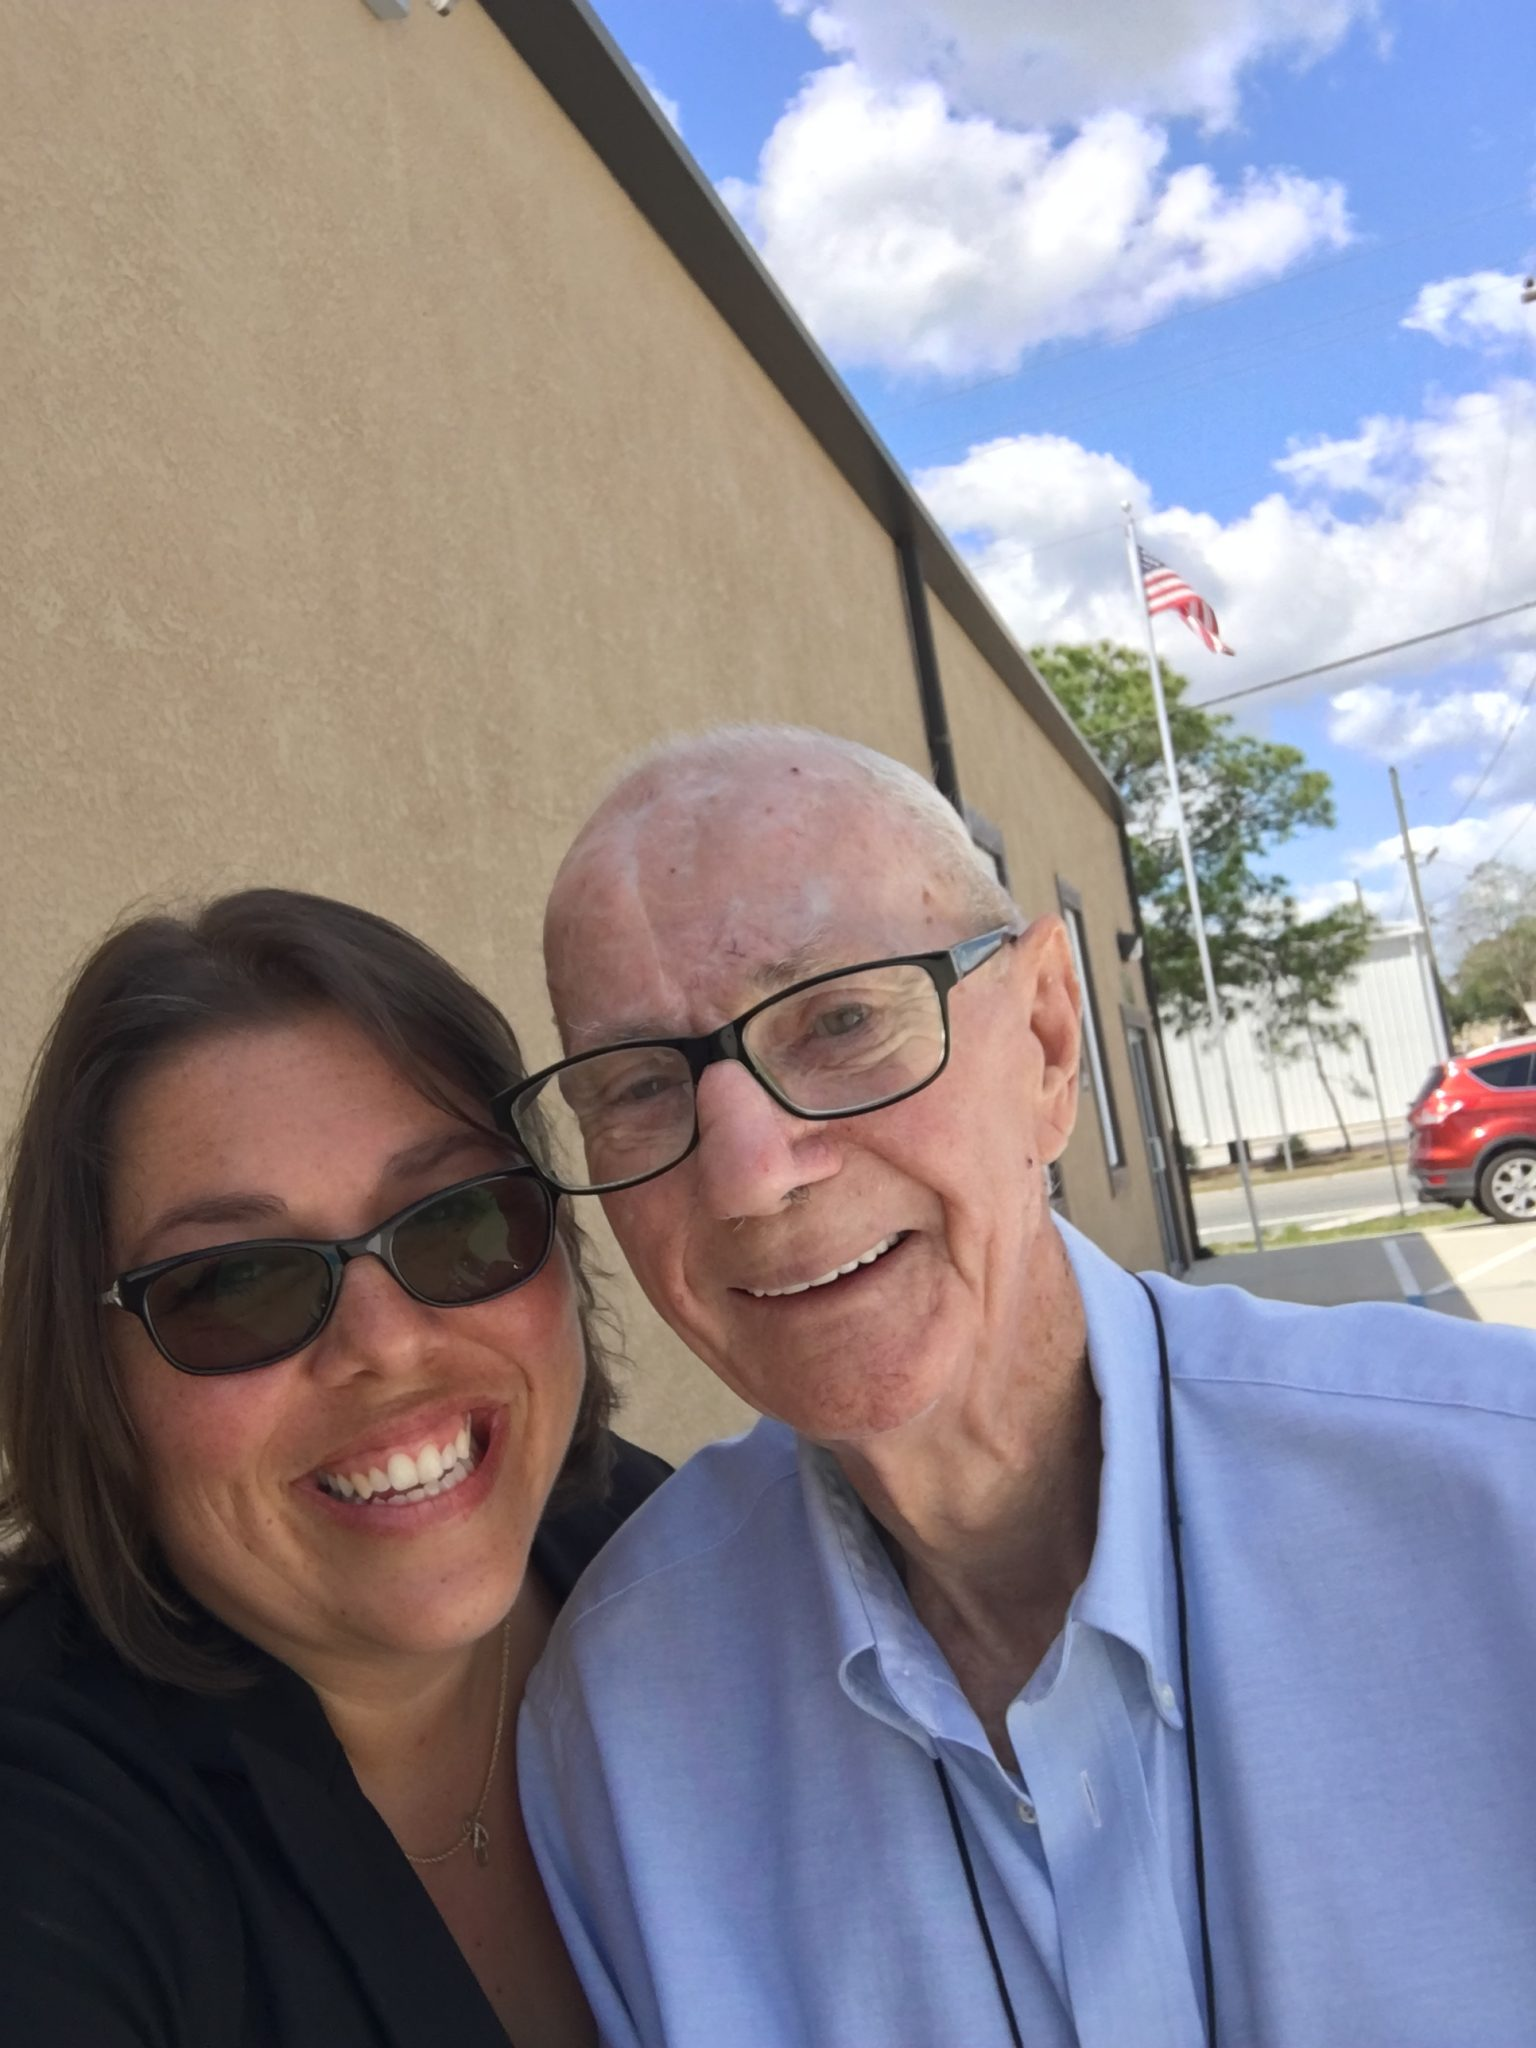 Mr. Bruce drove an hr to surprise me at one of our Sunday church services! He was a special man, and I miss him very much!